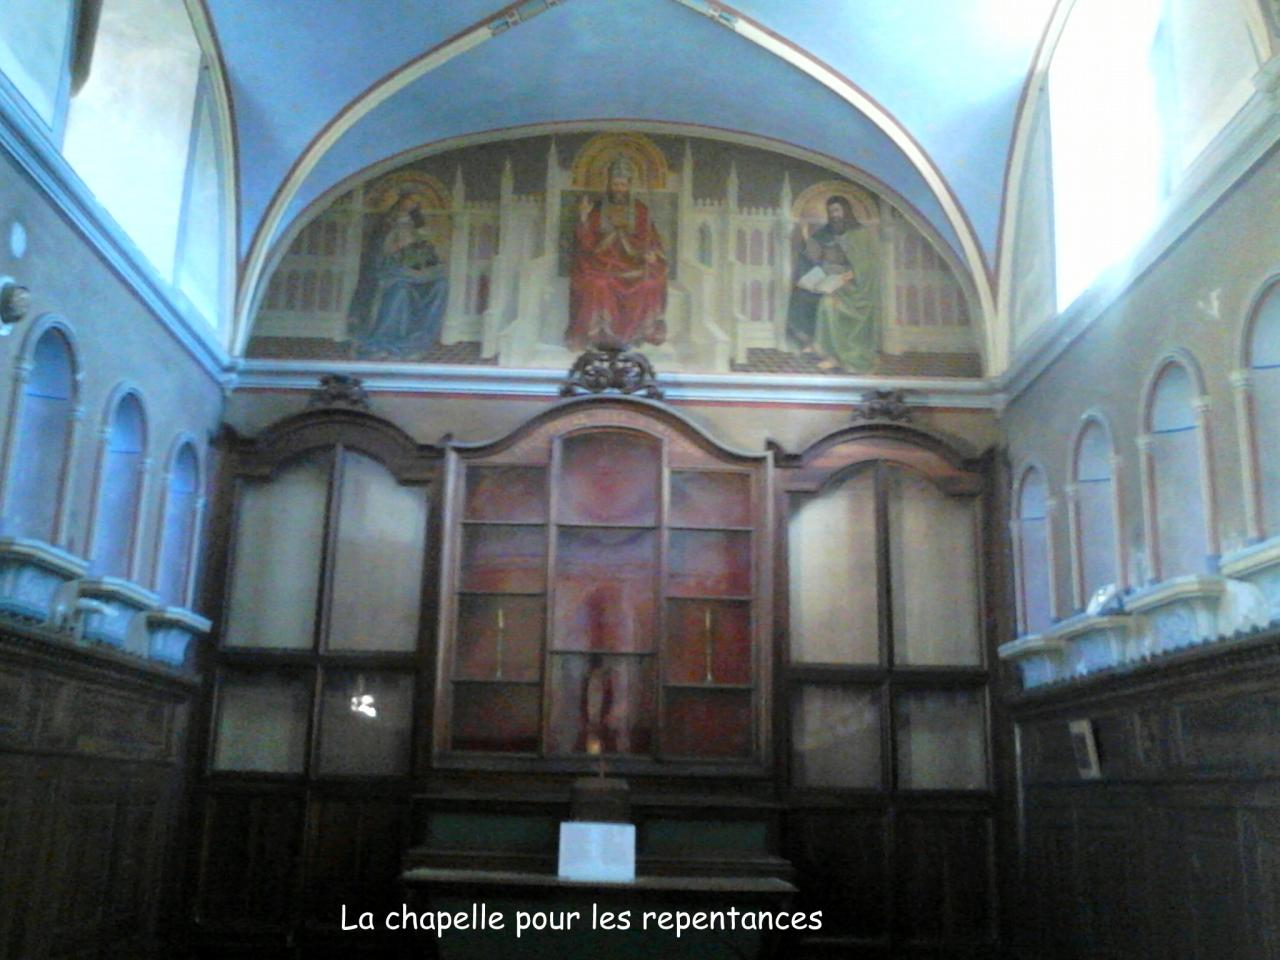 La chapelle des repentances